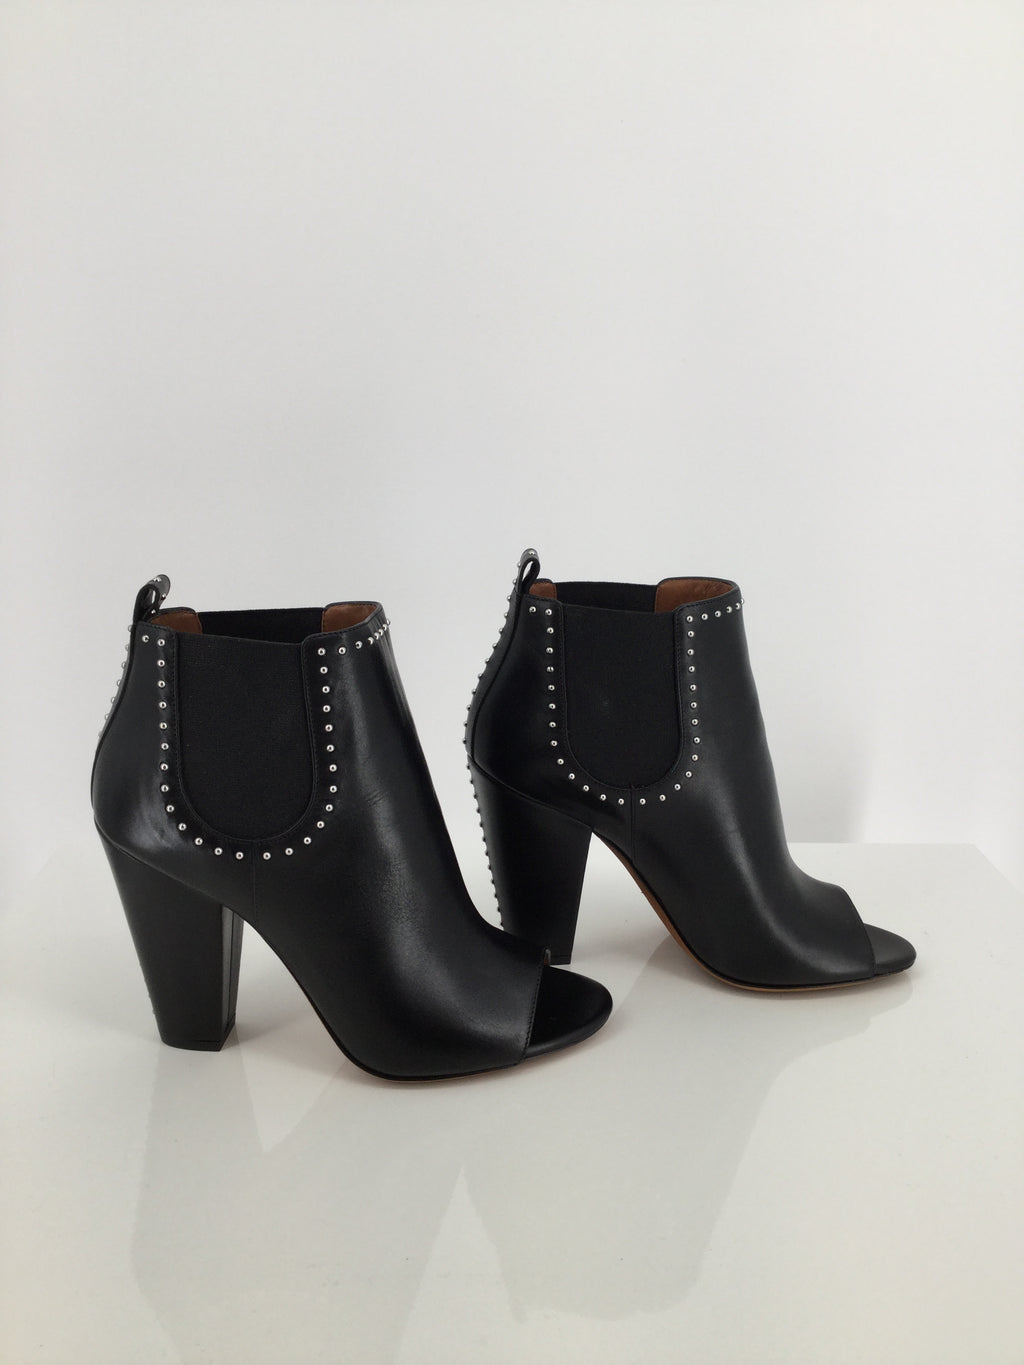 d2fc1a37e Up to 70% off Women s Boots - At Clothes Mentor – Clothes Mentor ...